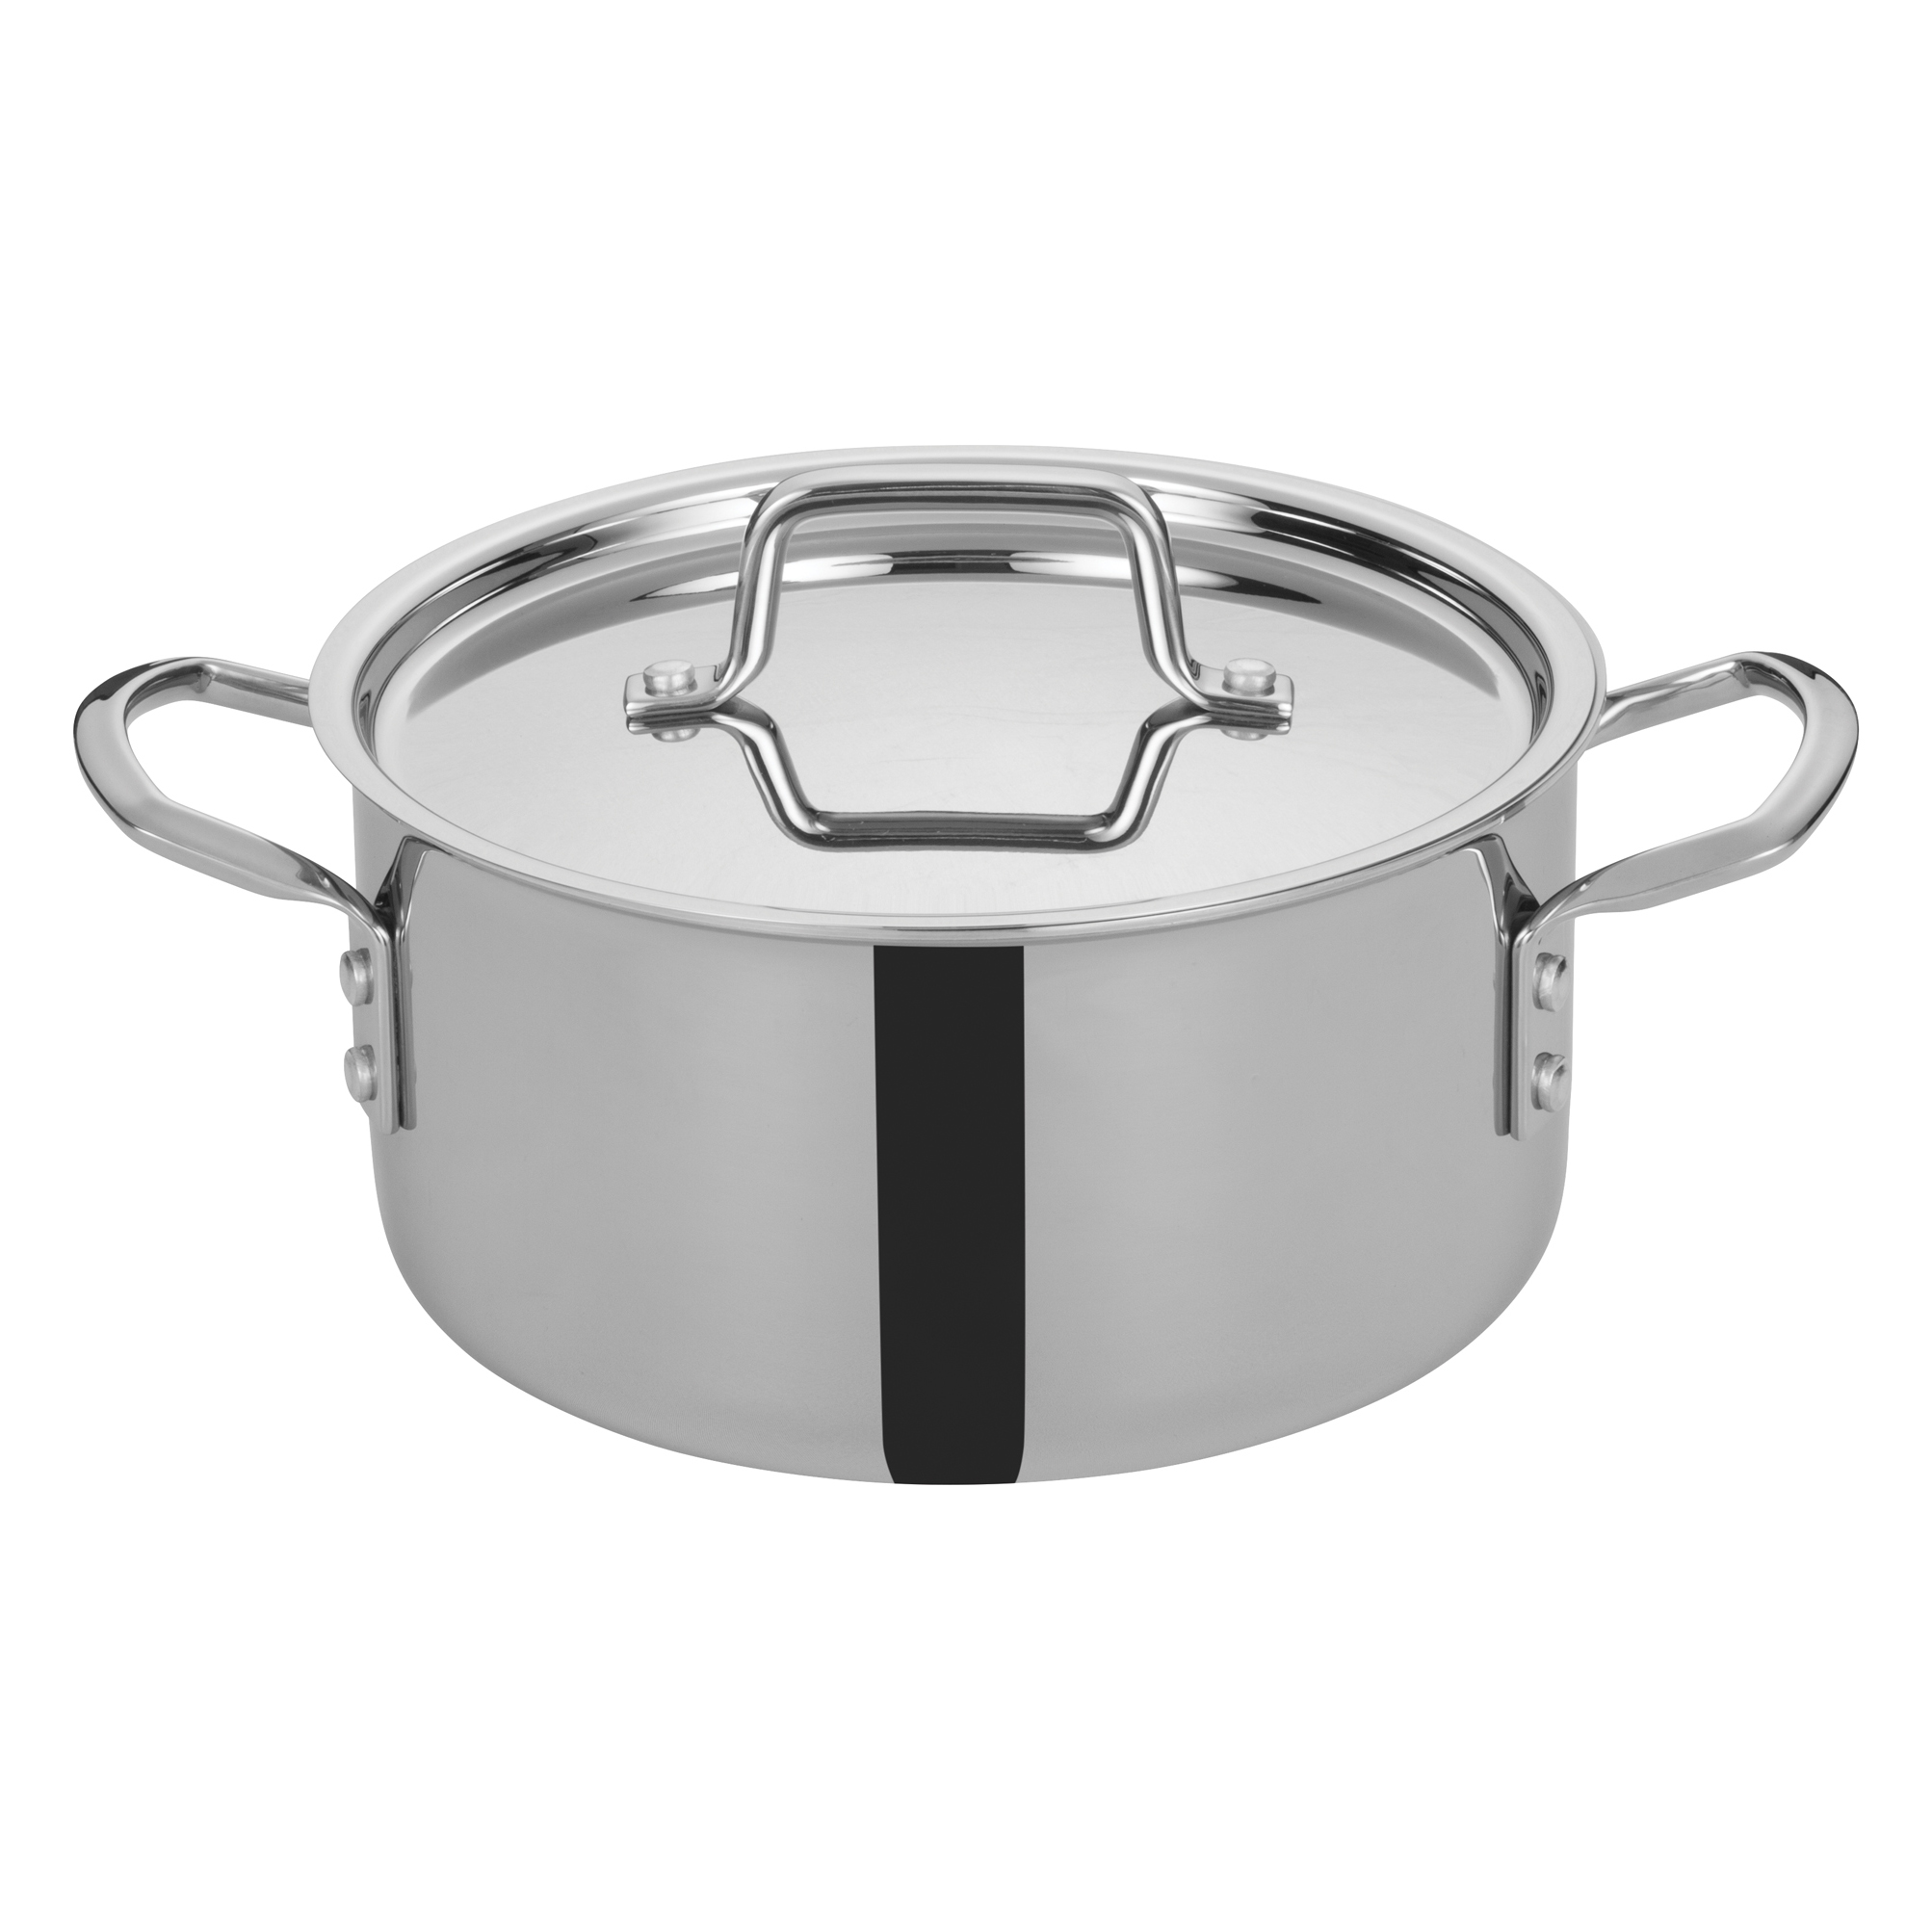 Winco TGSP-4 stock pot